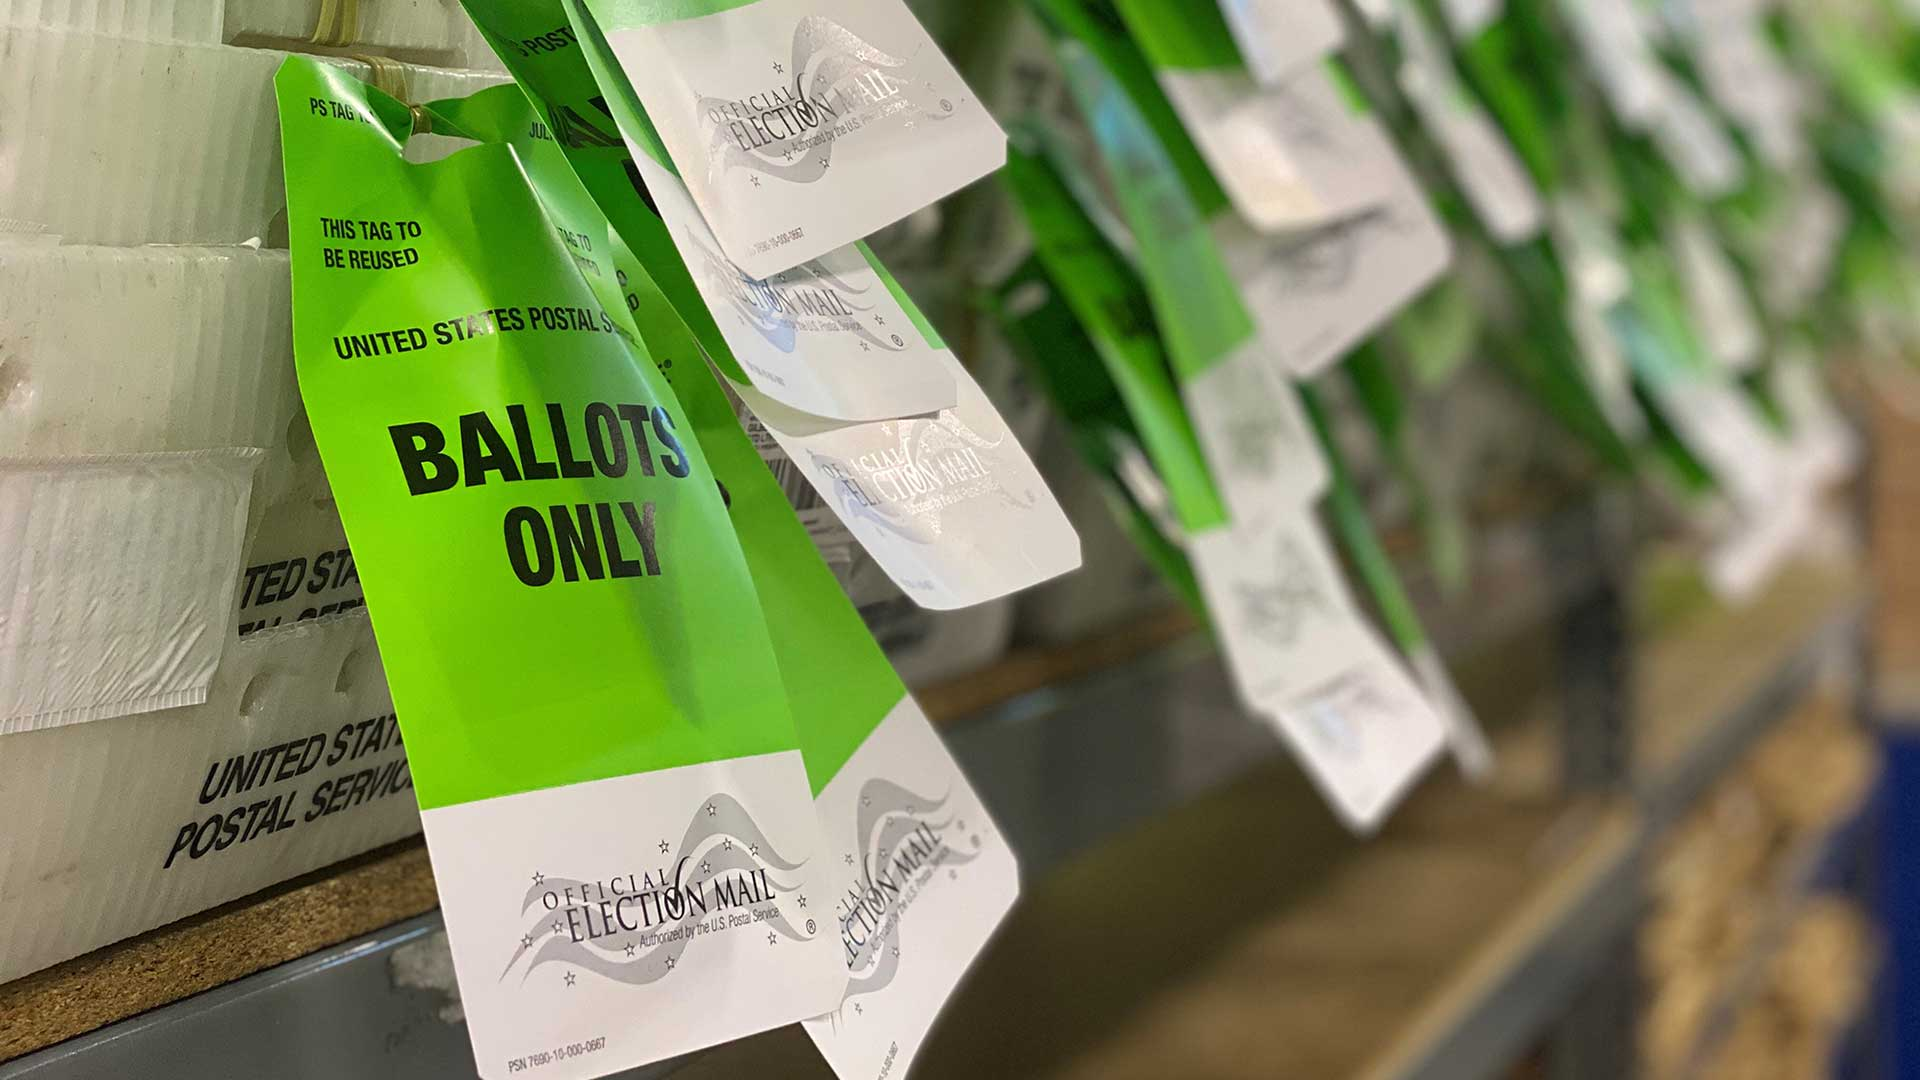 Arizona election officials on Saturday finished counting the more than 3.4 million ballots cast by voters in this election, a voter turnout rate of 79.9%, according to the Secretary of State's Office. Despite legal and political challenges to the results, state officials vowed to have the count certified by the Nov. 30 deadline.